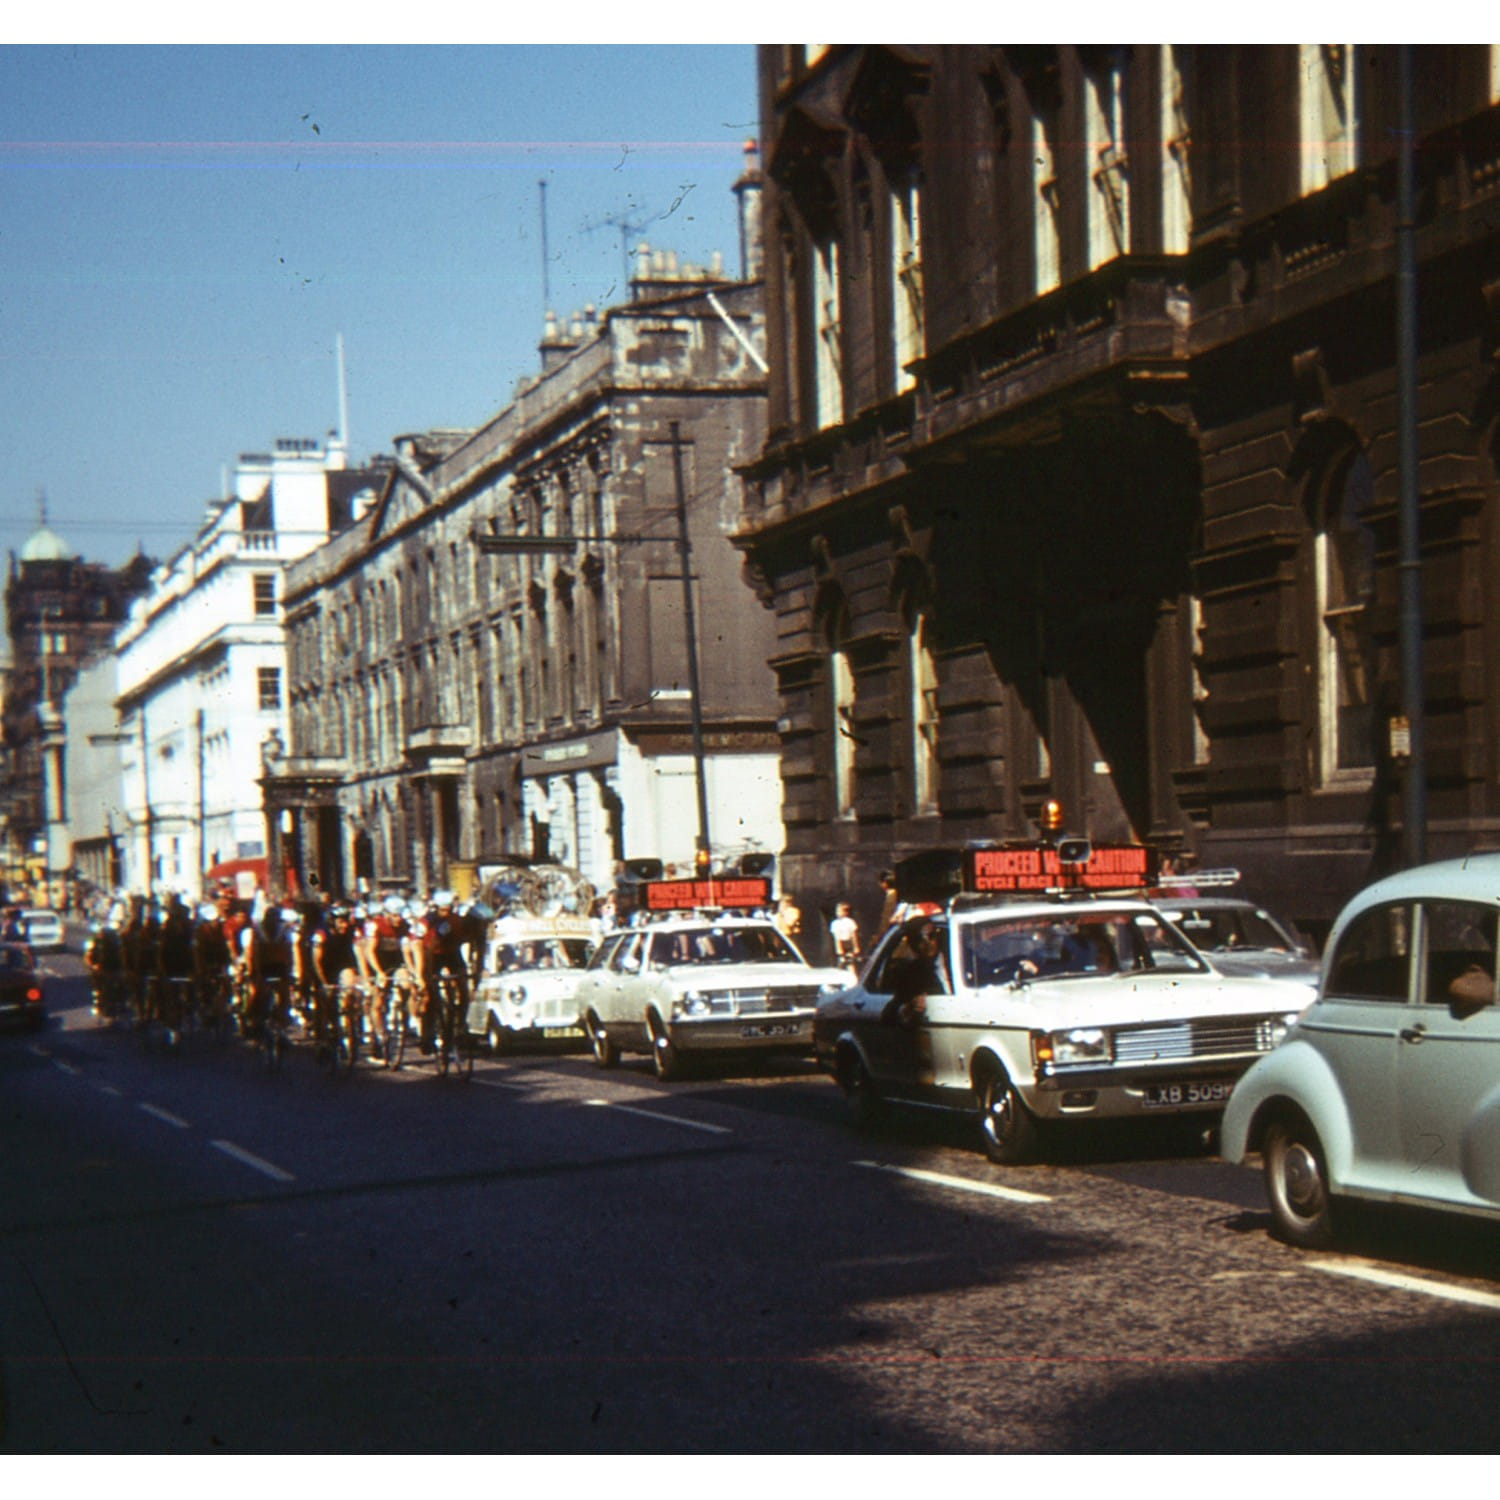 The riders and support vehicles head along George Street